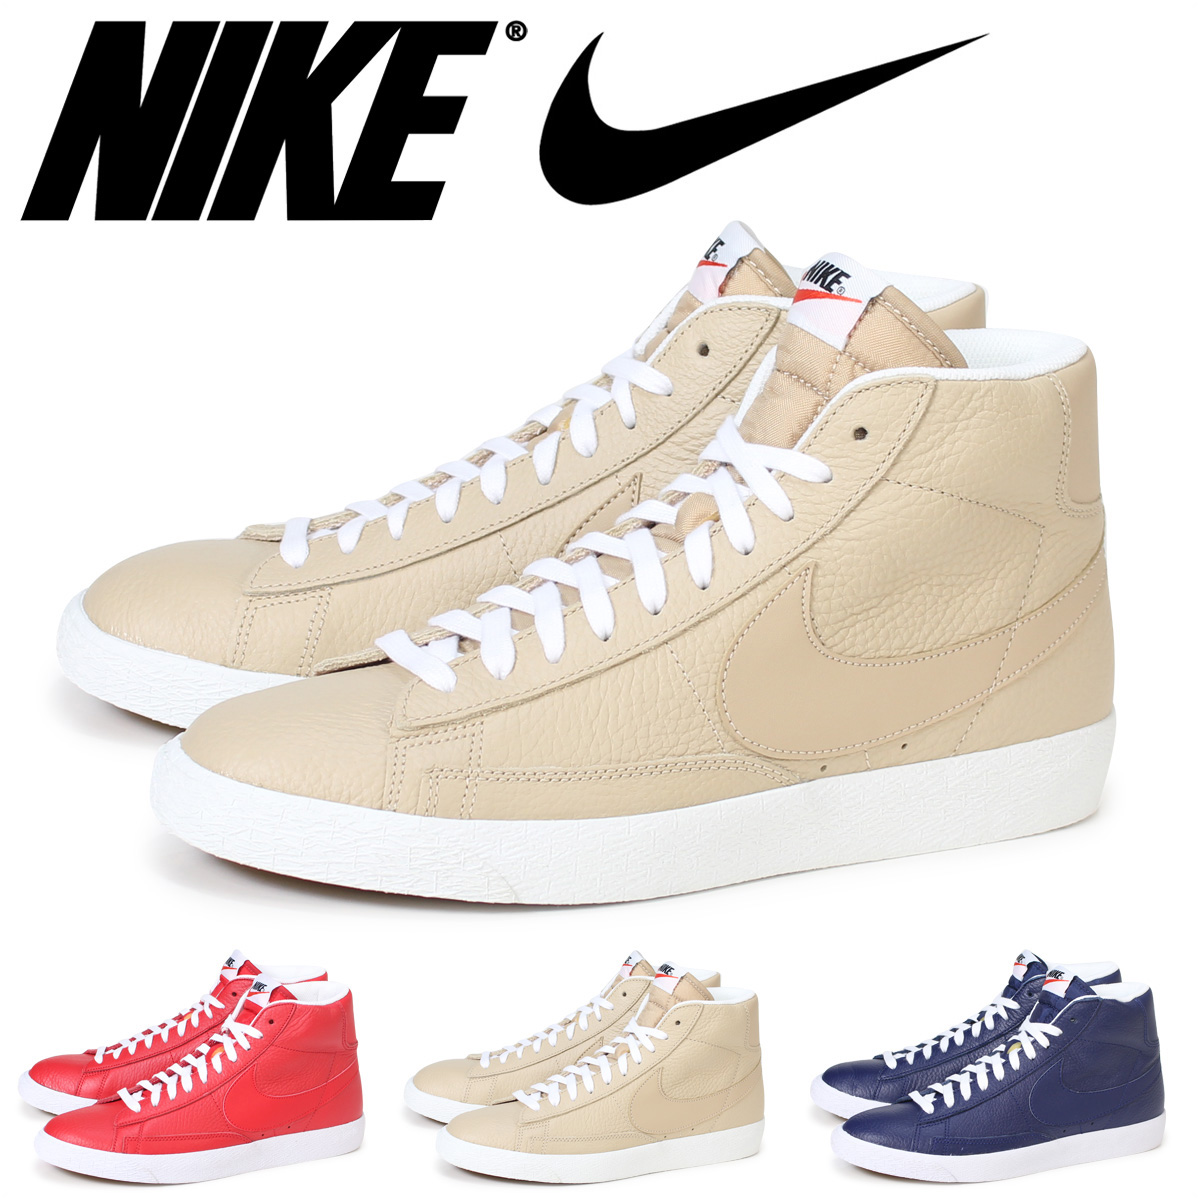 new york 099aa e09fe Nike NIKE blazer sneakers BLAZER MID PREMIUM 09 429,988-202 429,988-402  429,988-604 mens ladys shoes load planned Shinnyu load in reservation  product 33 ...